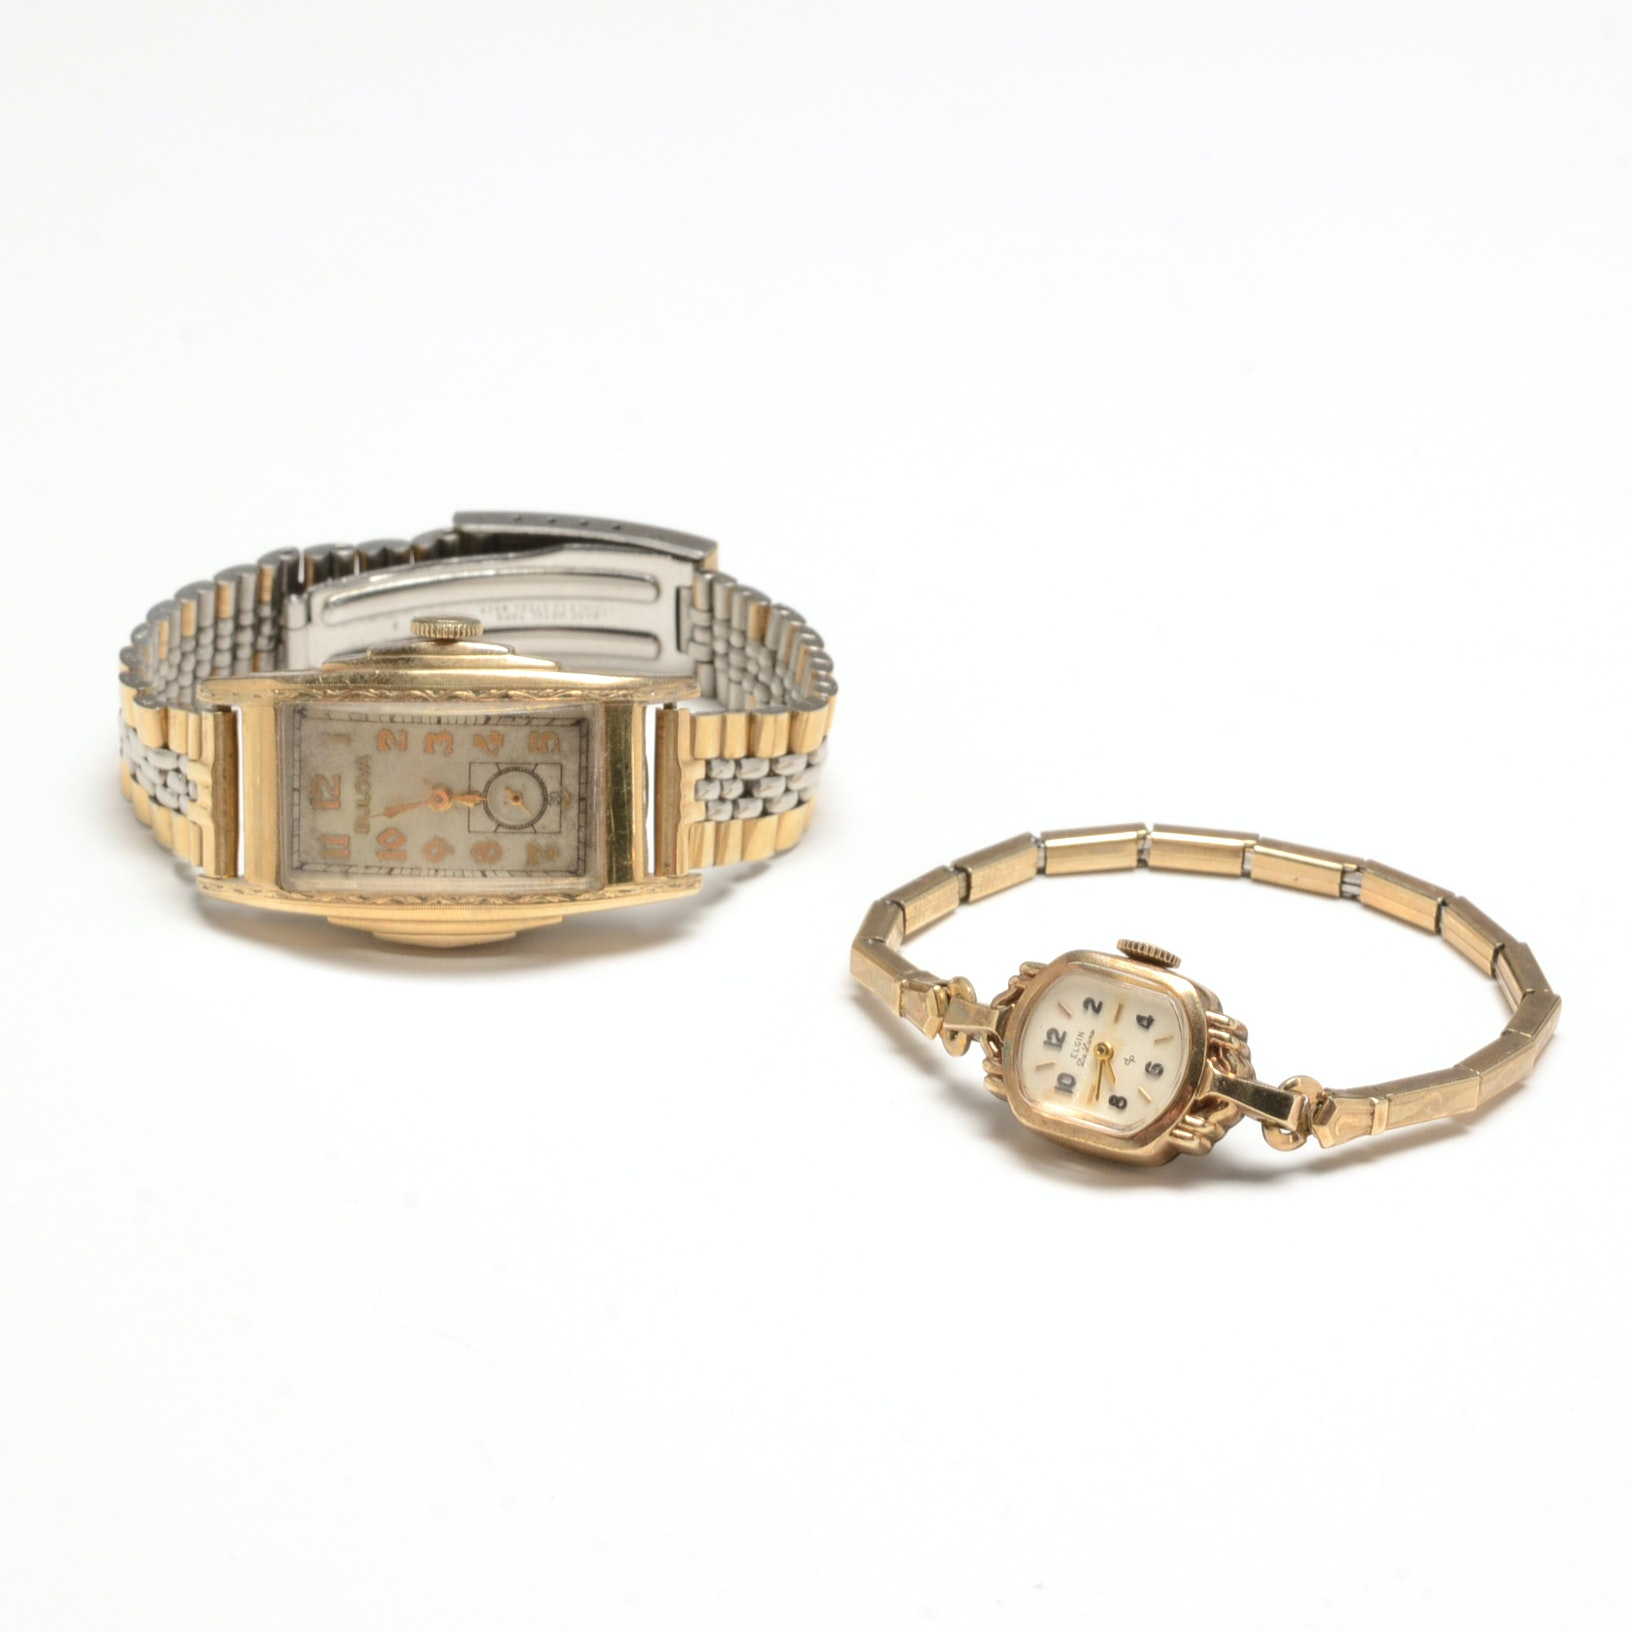 Pairing of Vintage Gold Filled Wristwatches